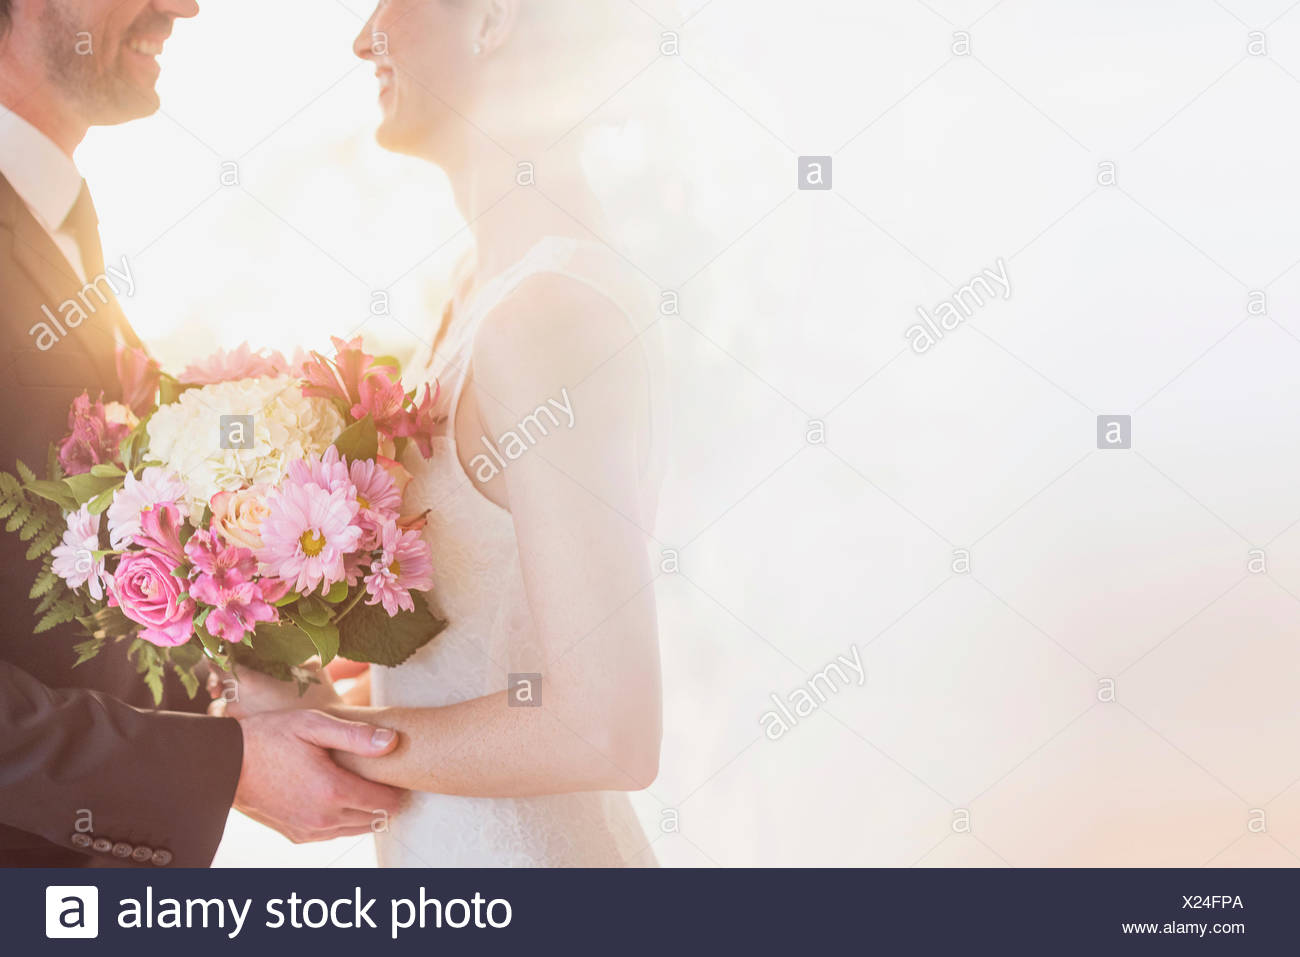 Bride and groom celebrating their wedding - Stock Image